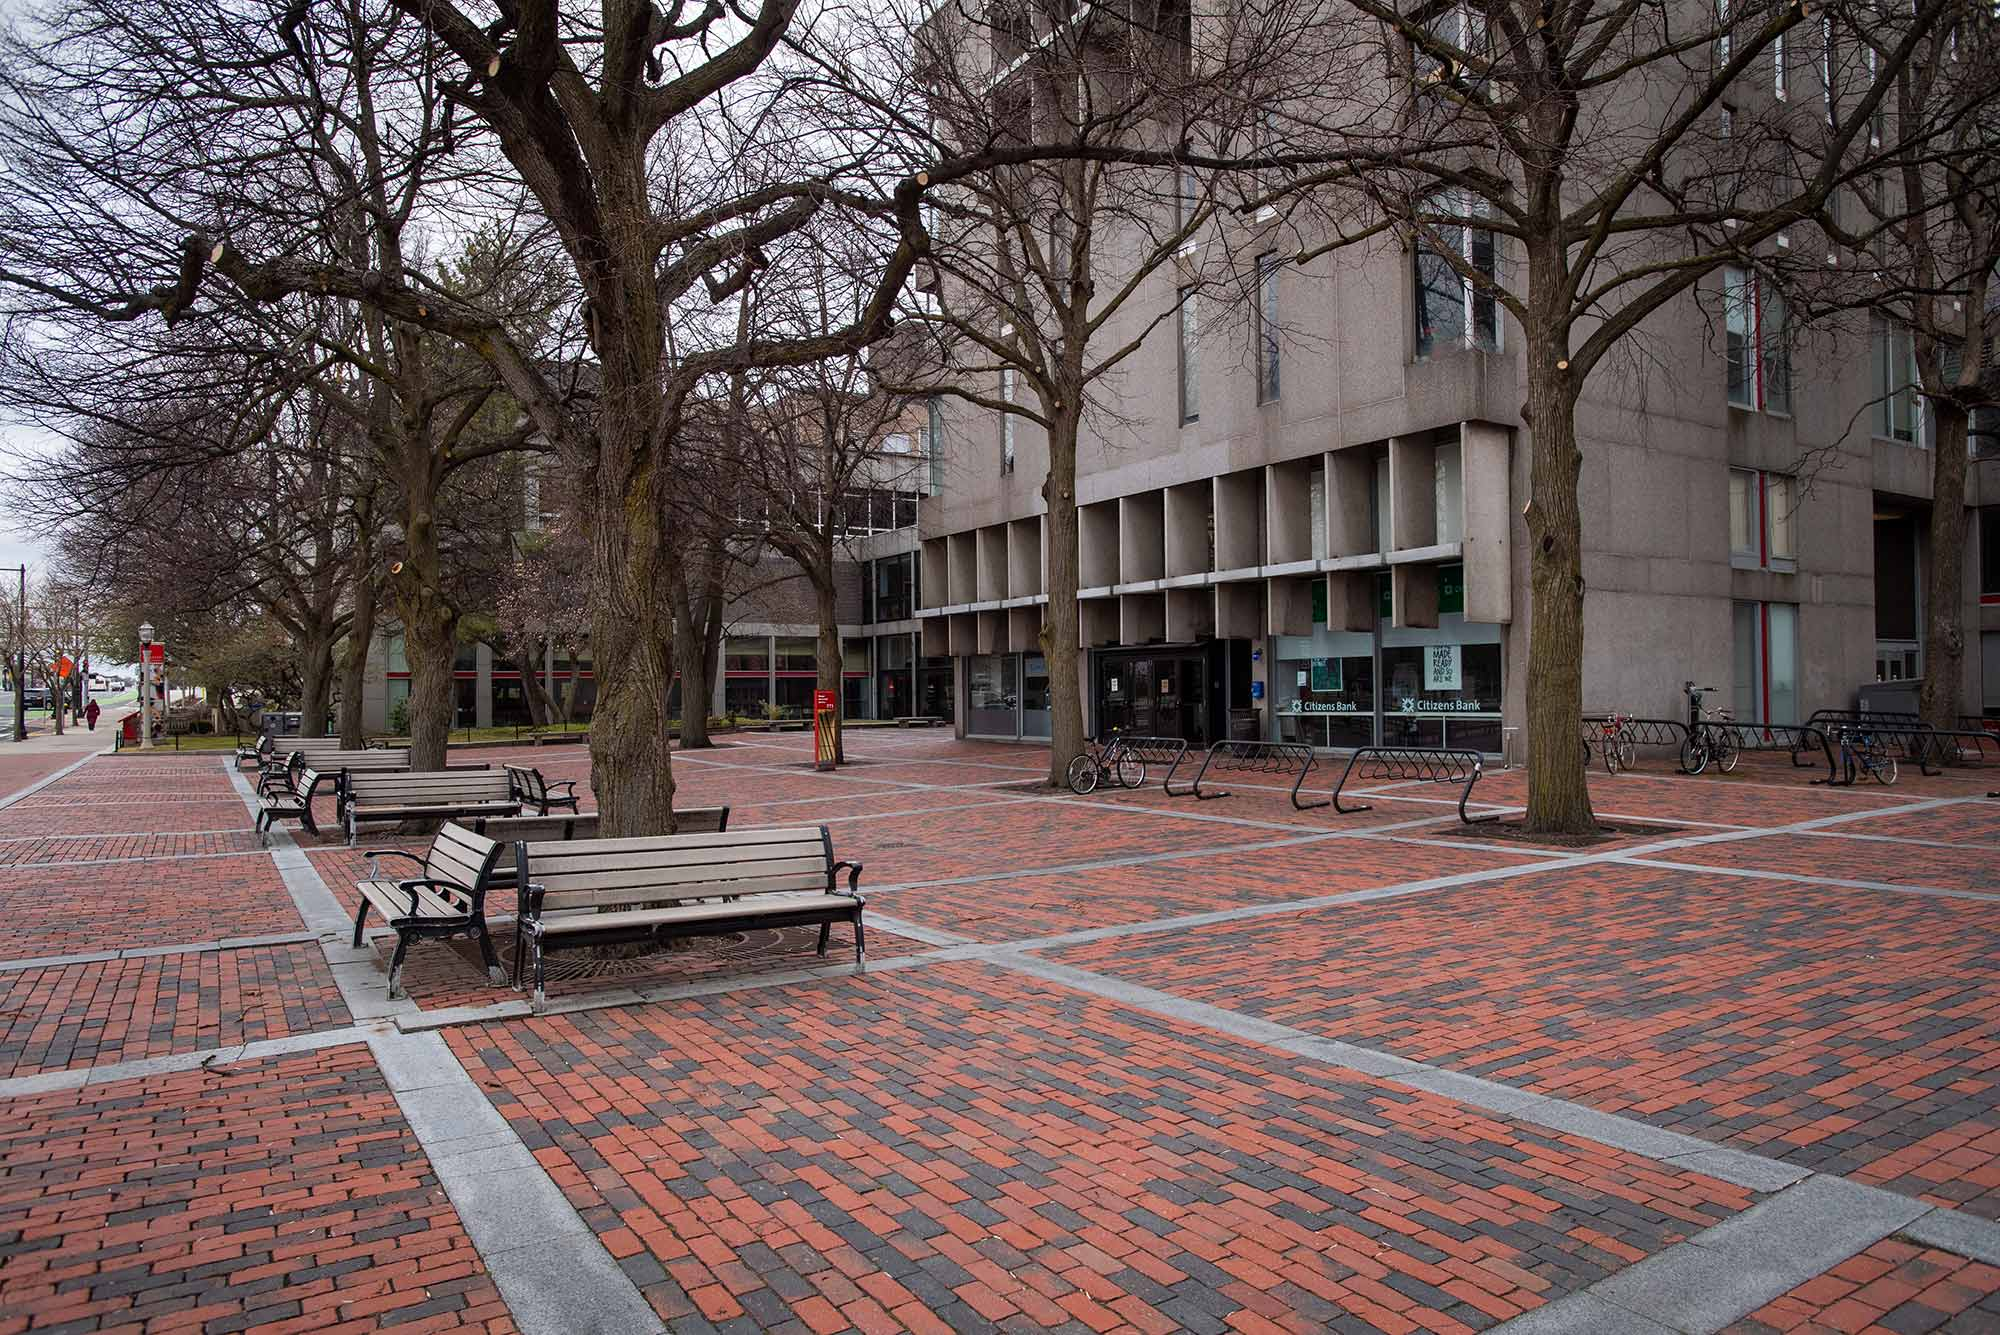 Shot of GSI Plaza in March 2020 on a rainy overcast day. Benches and bare trees are seen.